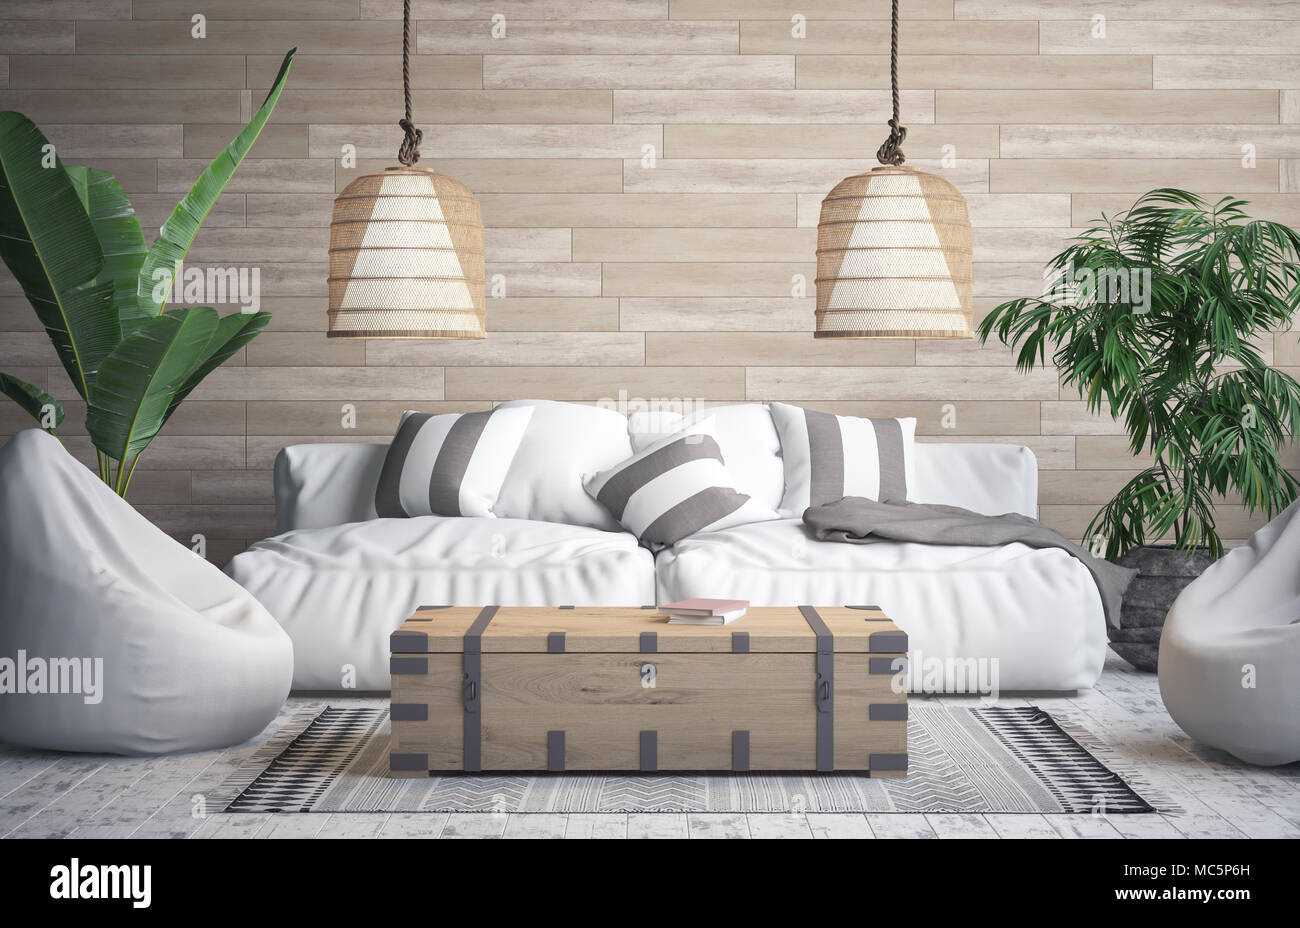 Tropical interior background 3d render